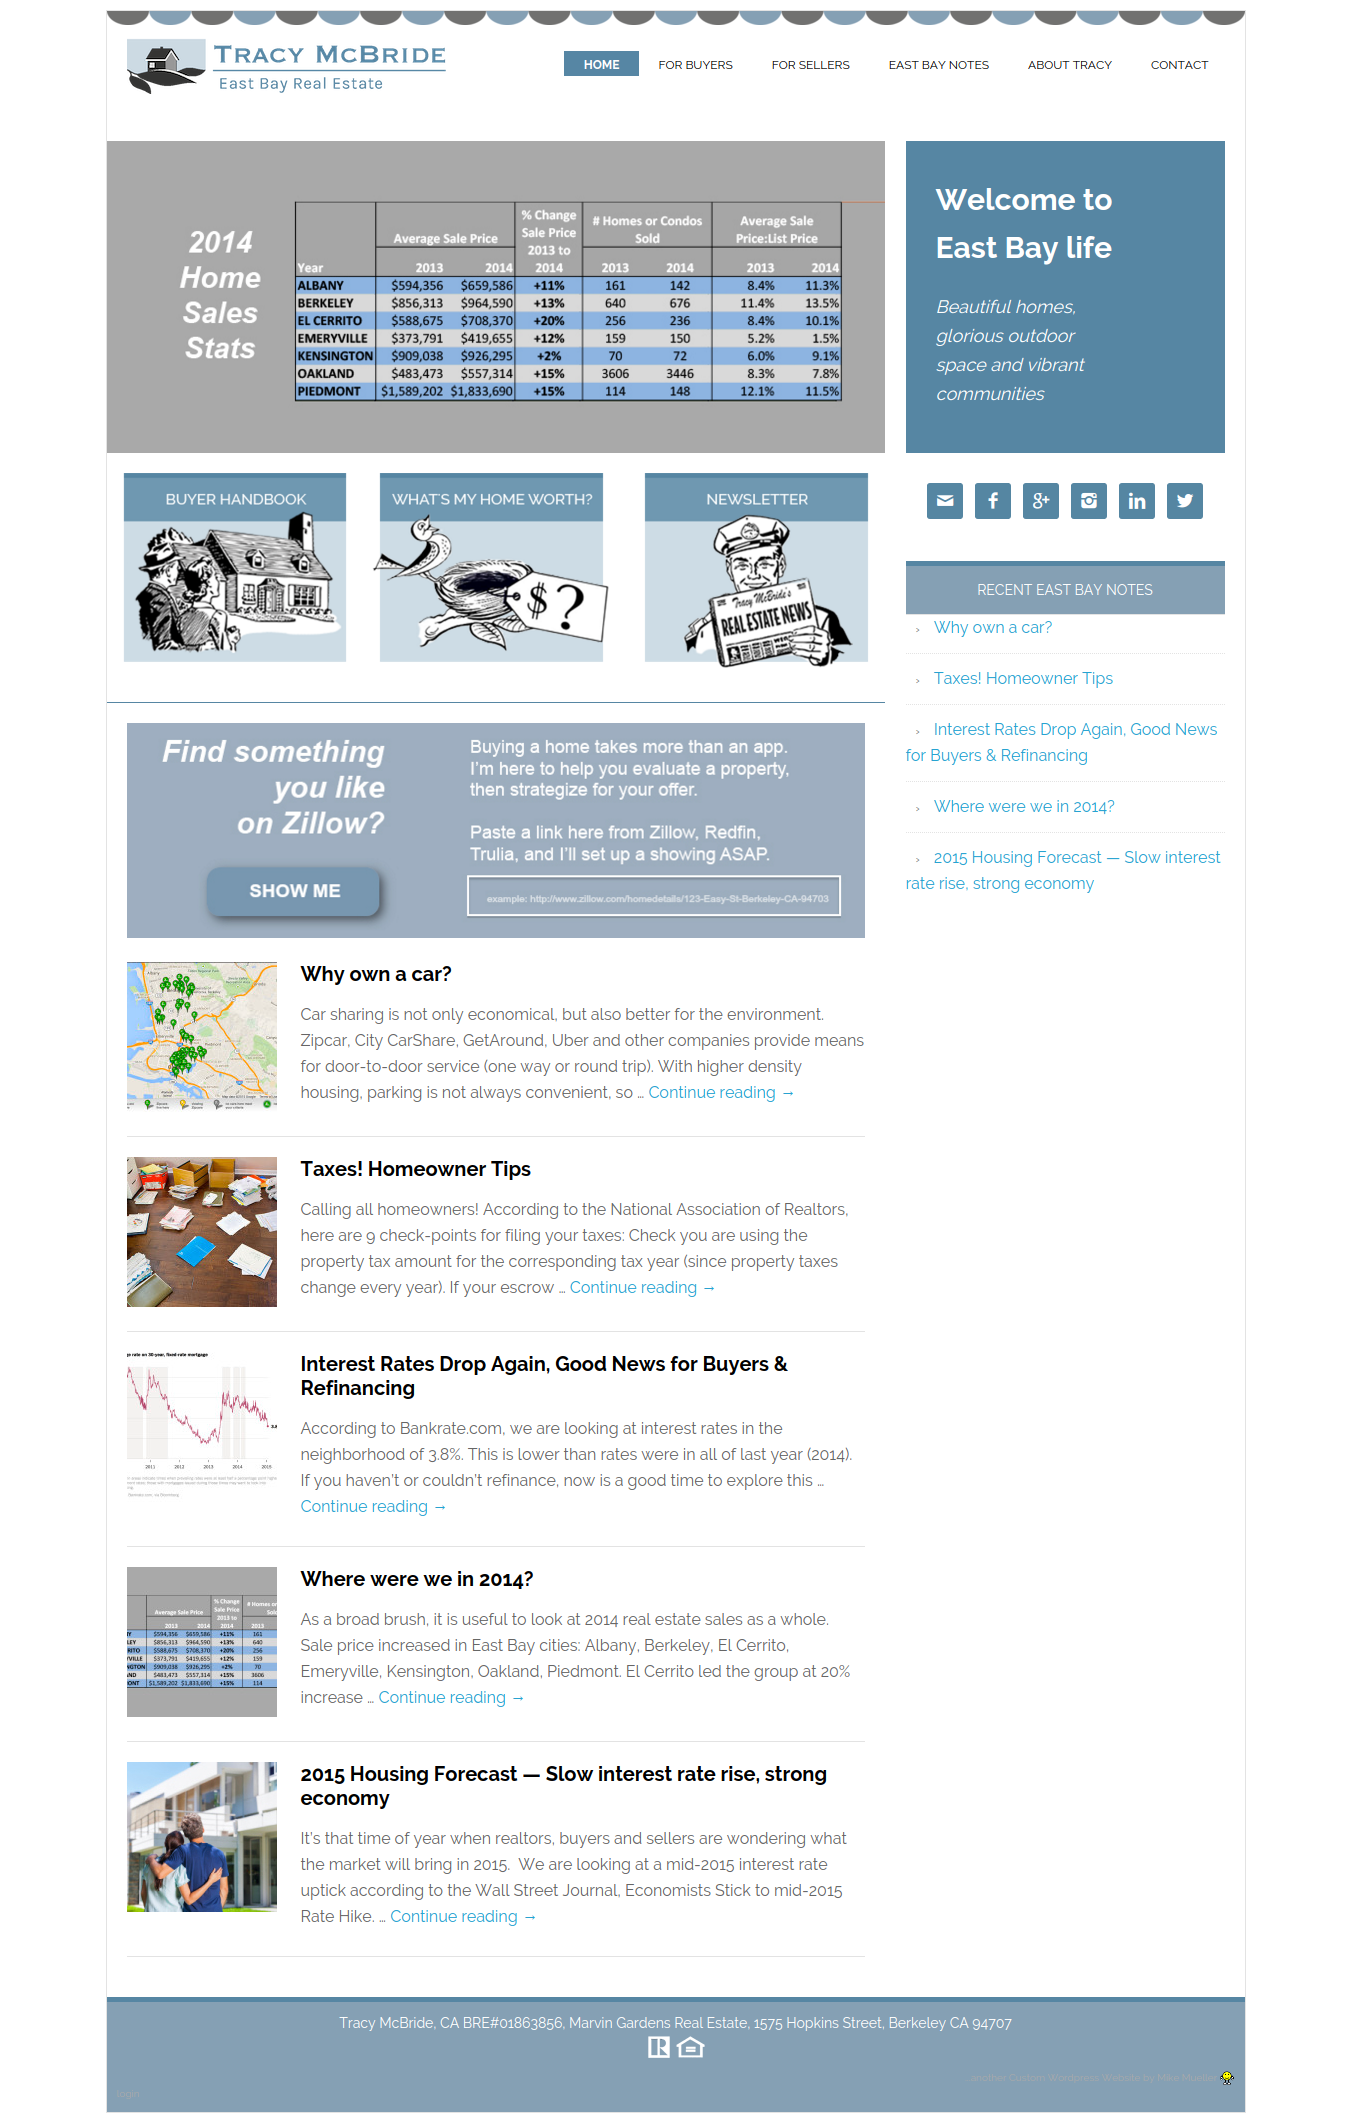 wordpress gallery and hosting options areweconnected com